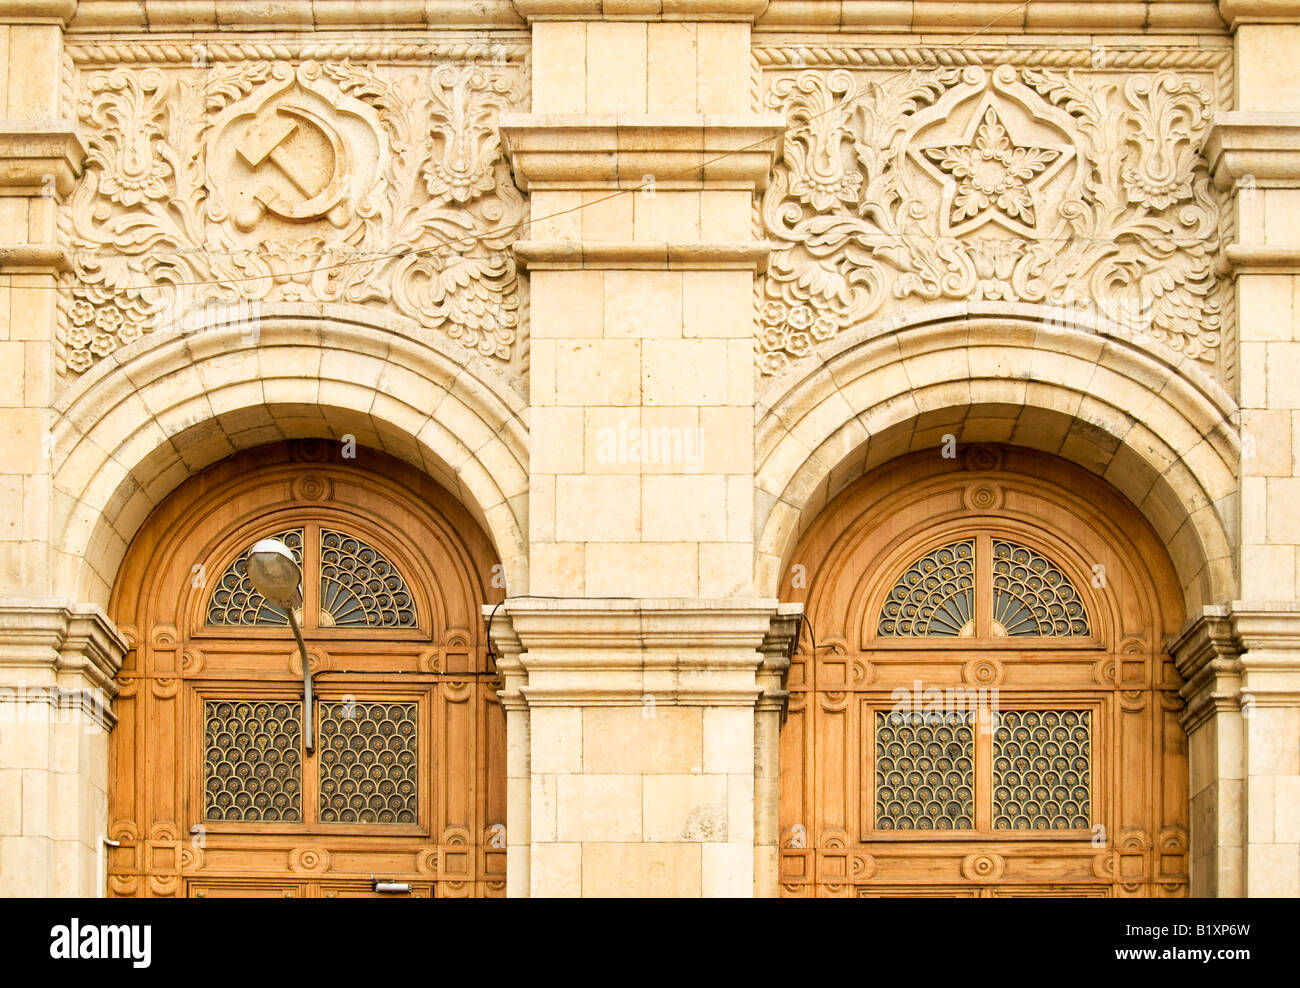 Detail of Stalin-era building at Kudrinskaya Square (1954), Moscow, Russia Stock Photo